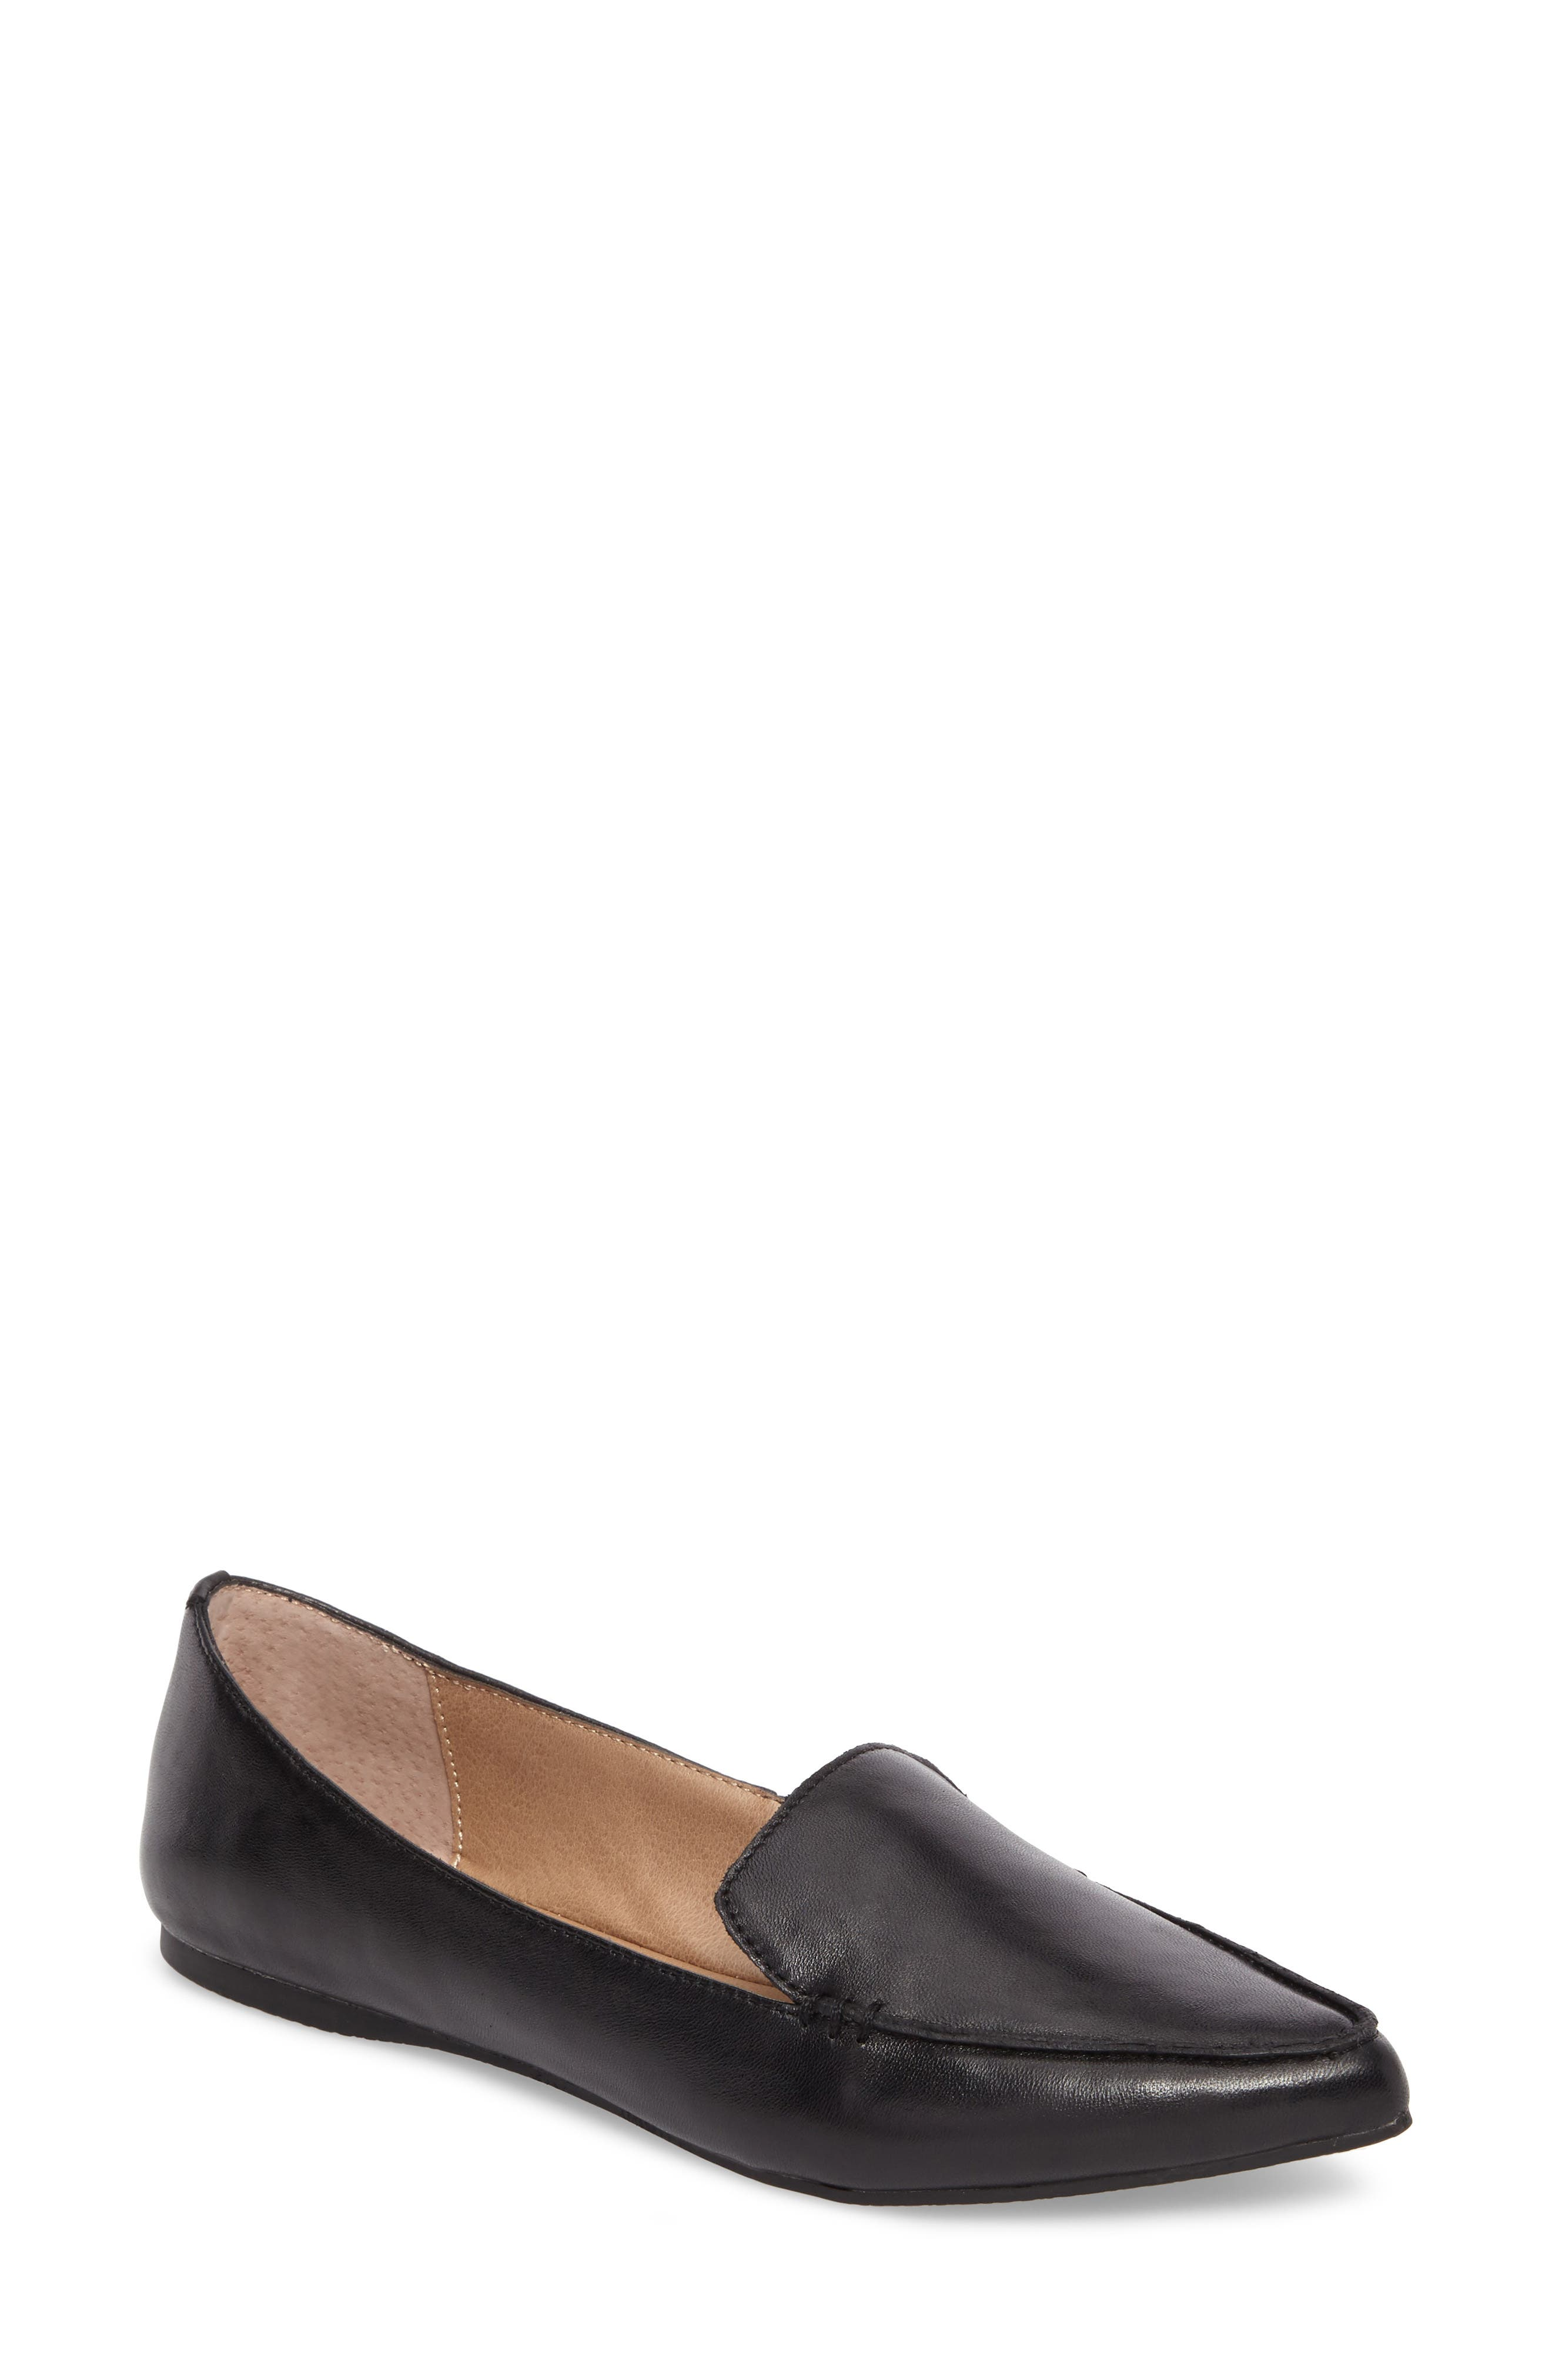 Feather Loafer Flat,                         Main,                         color, Black Leather